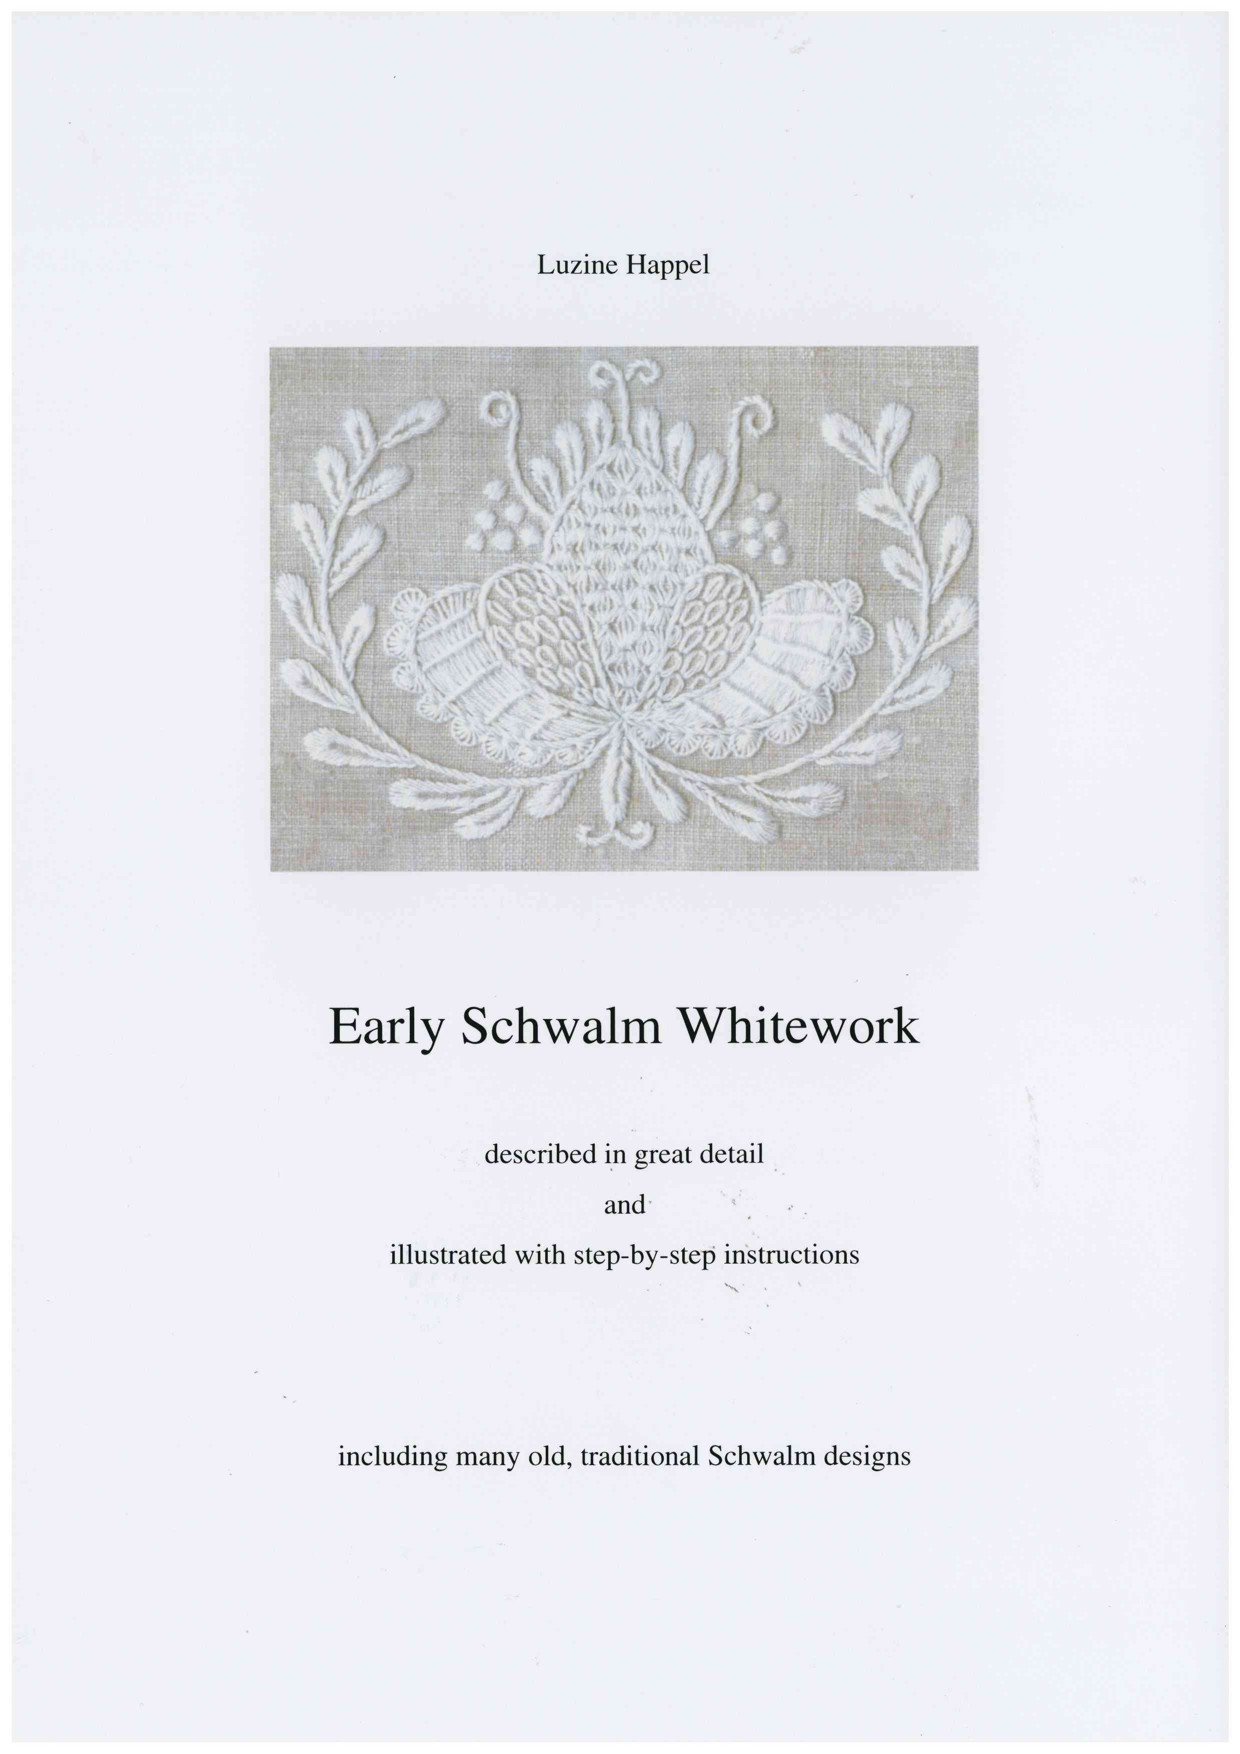 Early Schwalm Whitework 1 / 7